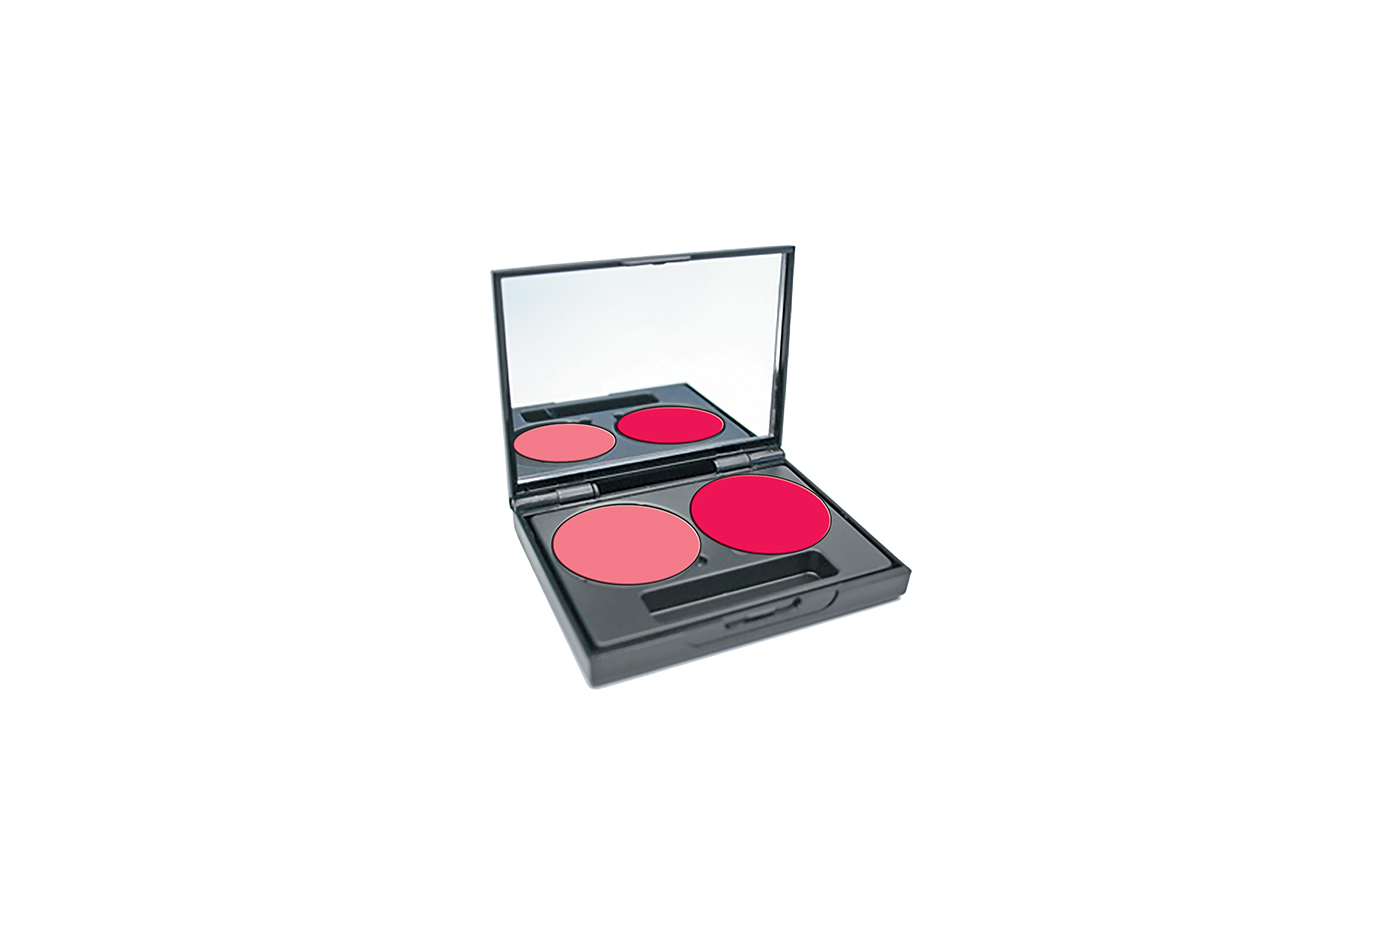 Make-Up Studio Cream Blusher Palette